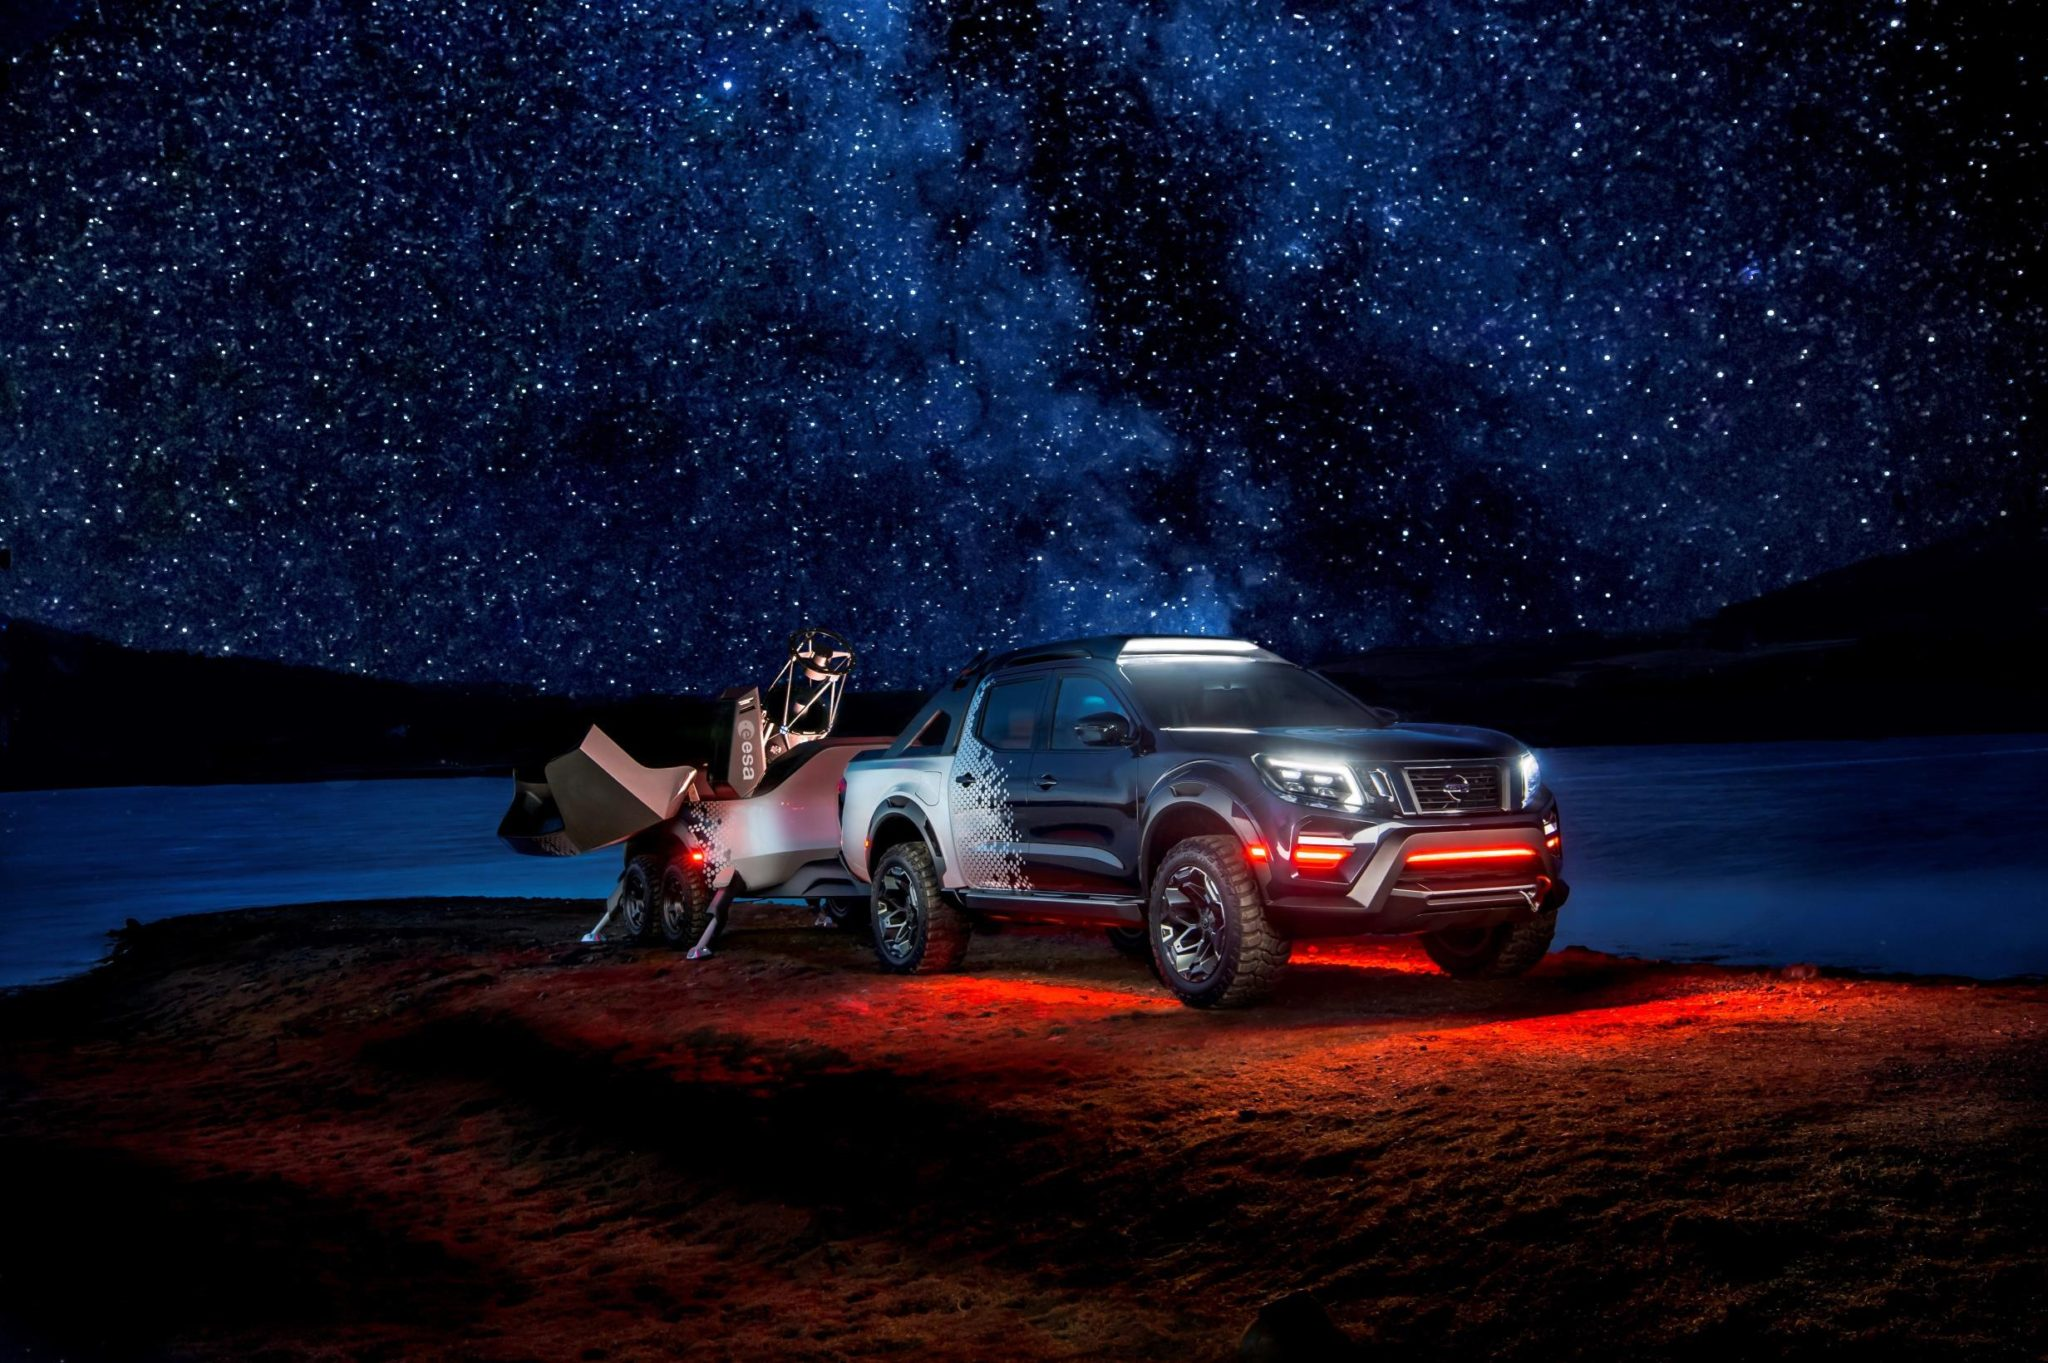 NISSAN UNVEILS EXCITING NEW PICKUP CONCEPT WHILE ADDING TO THE NAVARA LINEUP AT HANNOVER MOTOR SHOW